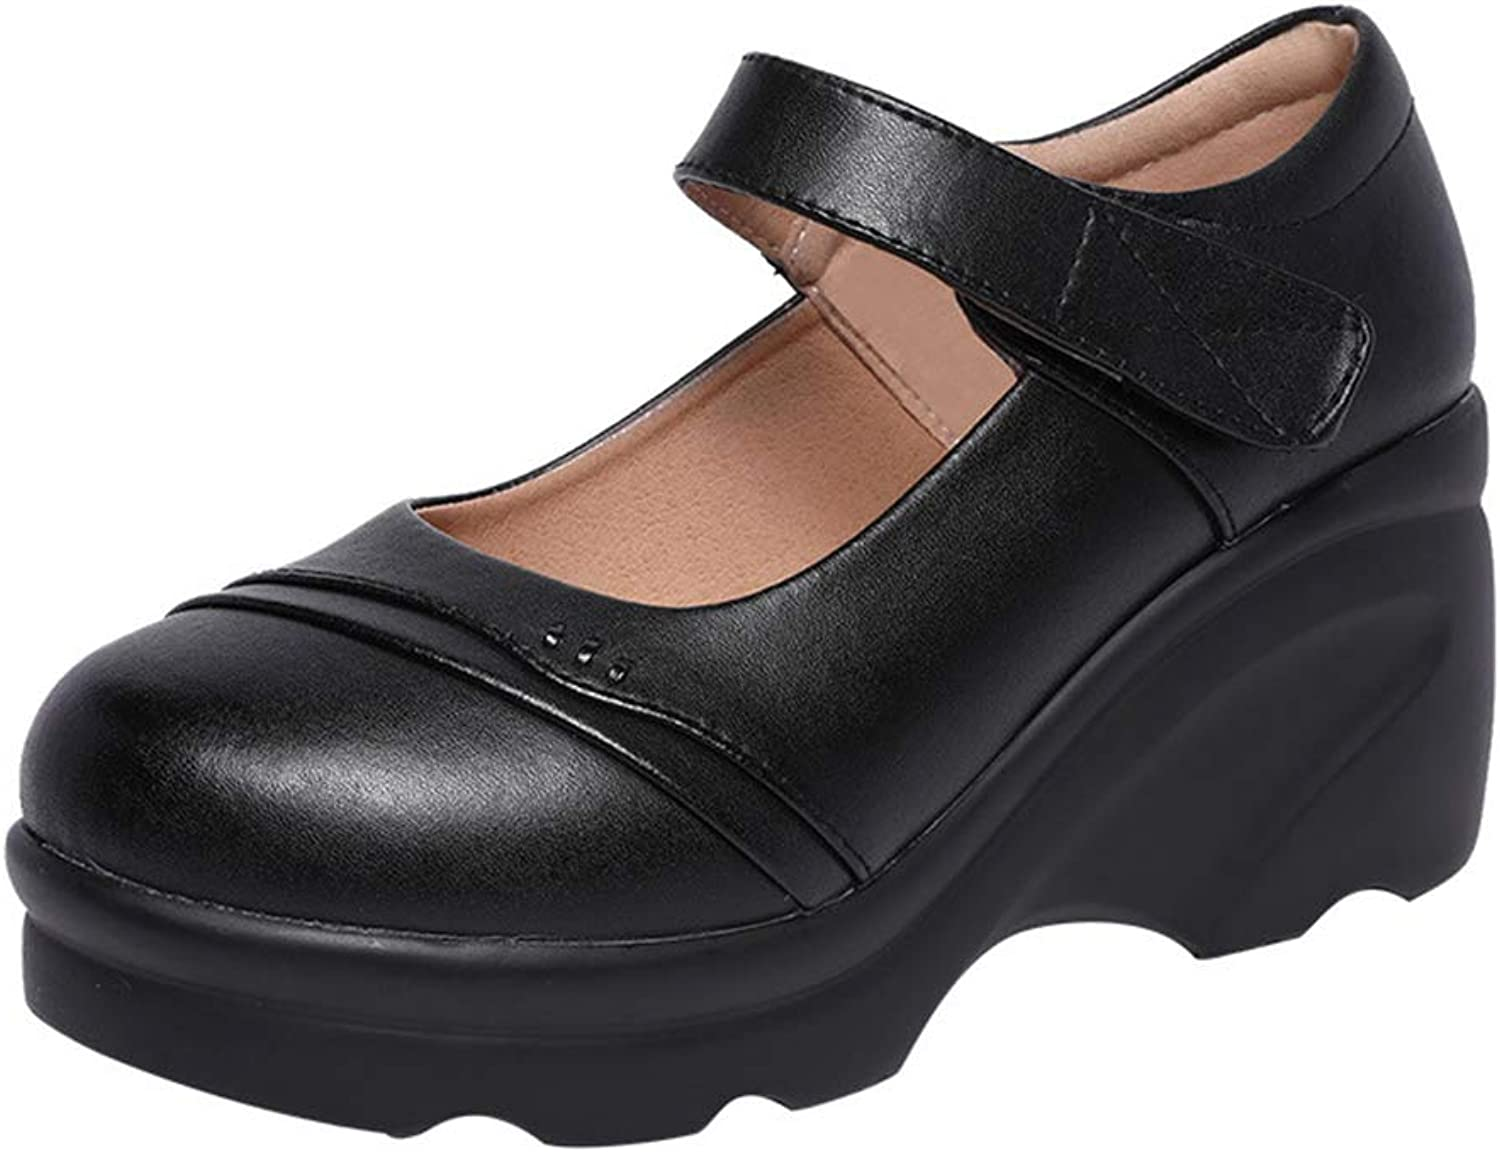 Women's Fashion shoes Platform shoes High-Heeled shoes Wedges Middle-Aged Mother shoes Wedding Party & Evening Dress shoes (color   Black, Size   39)